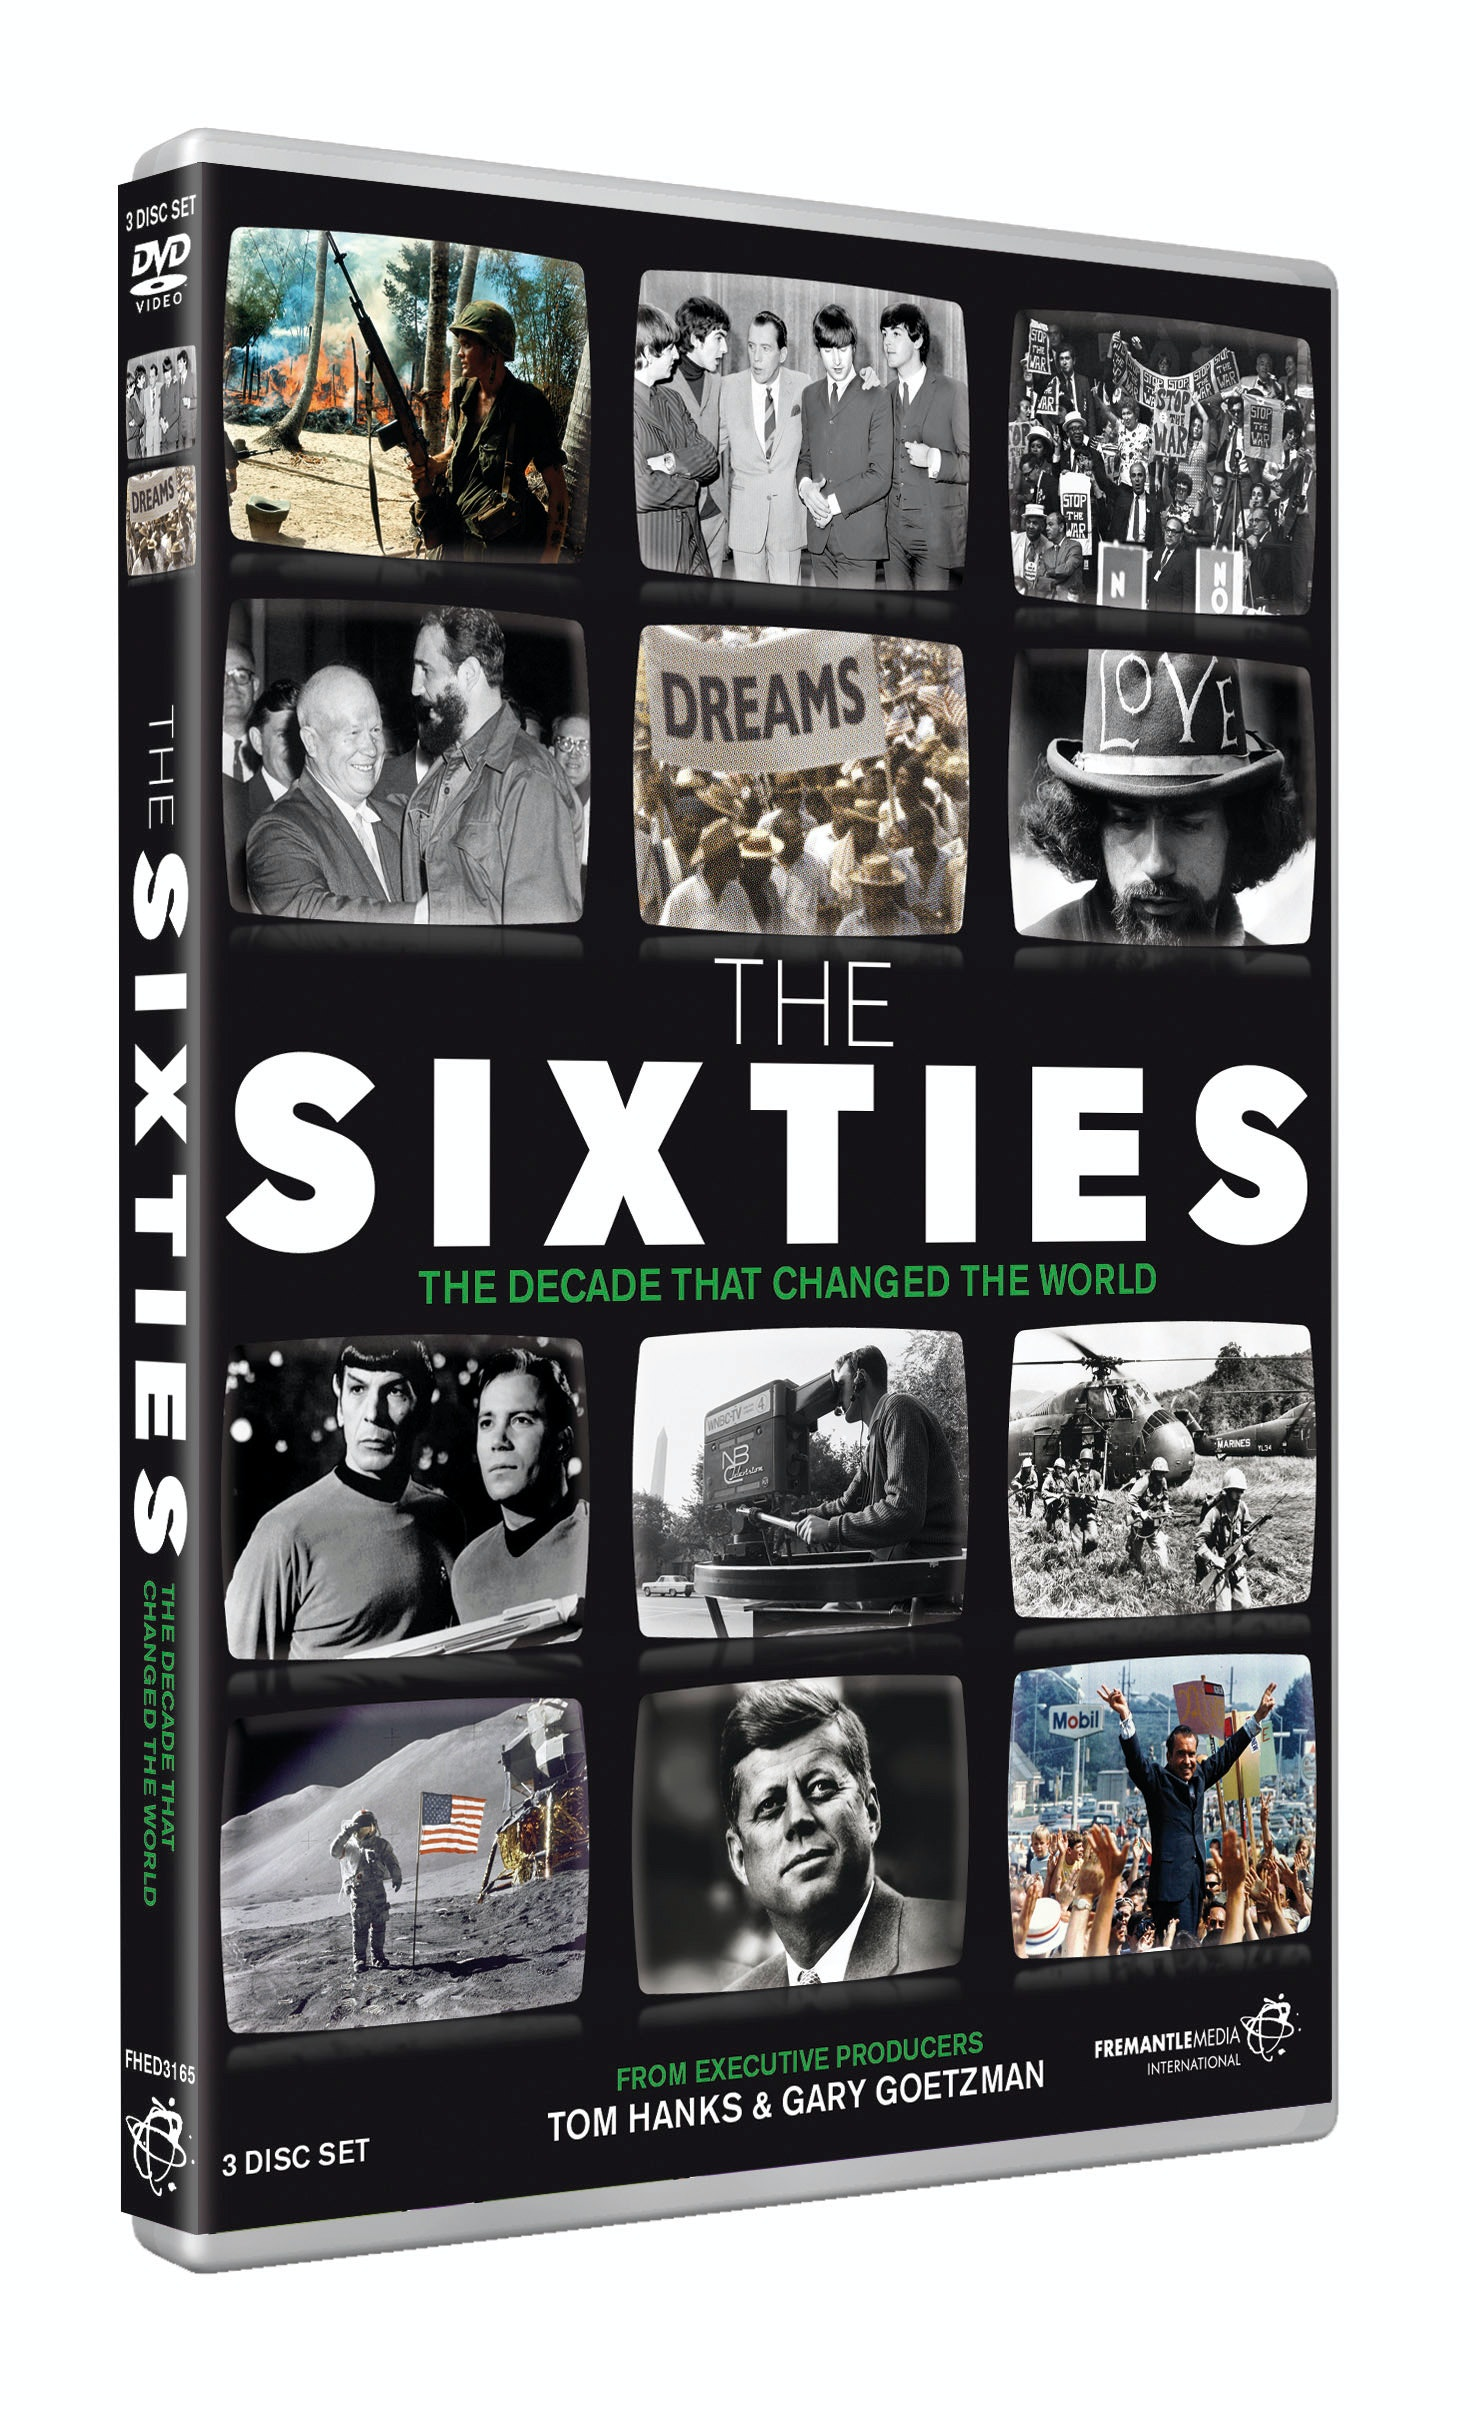 The Sixties sweepstakes